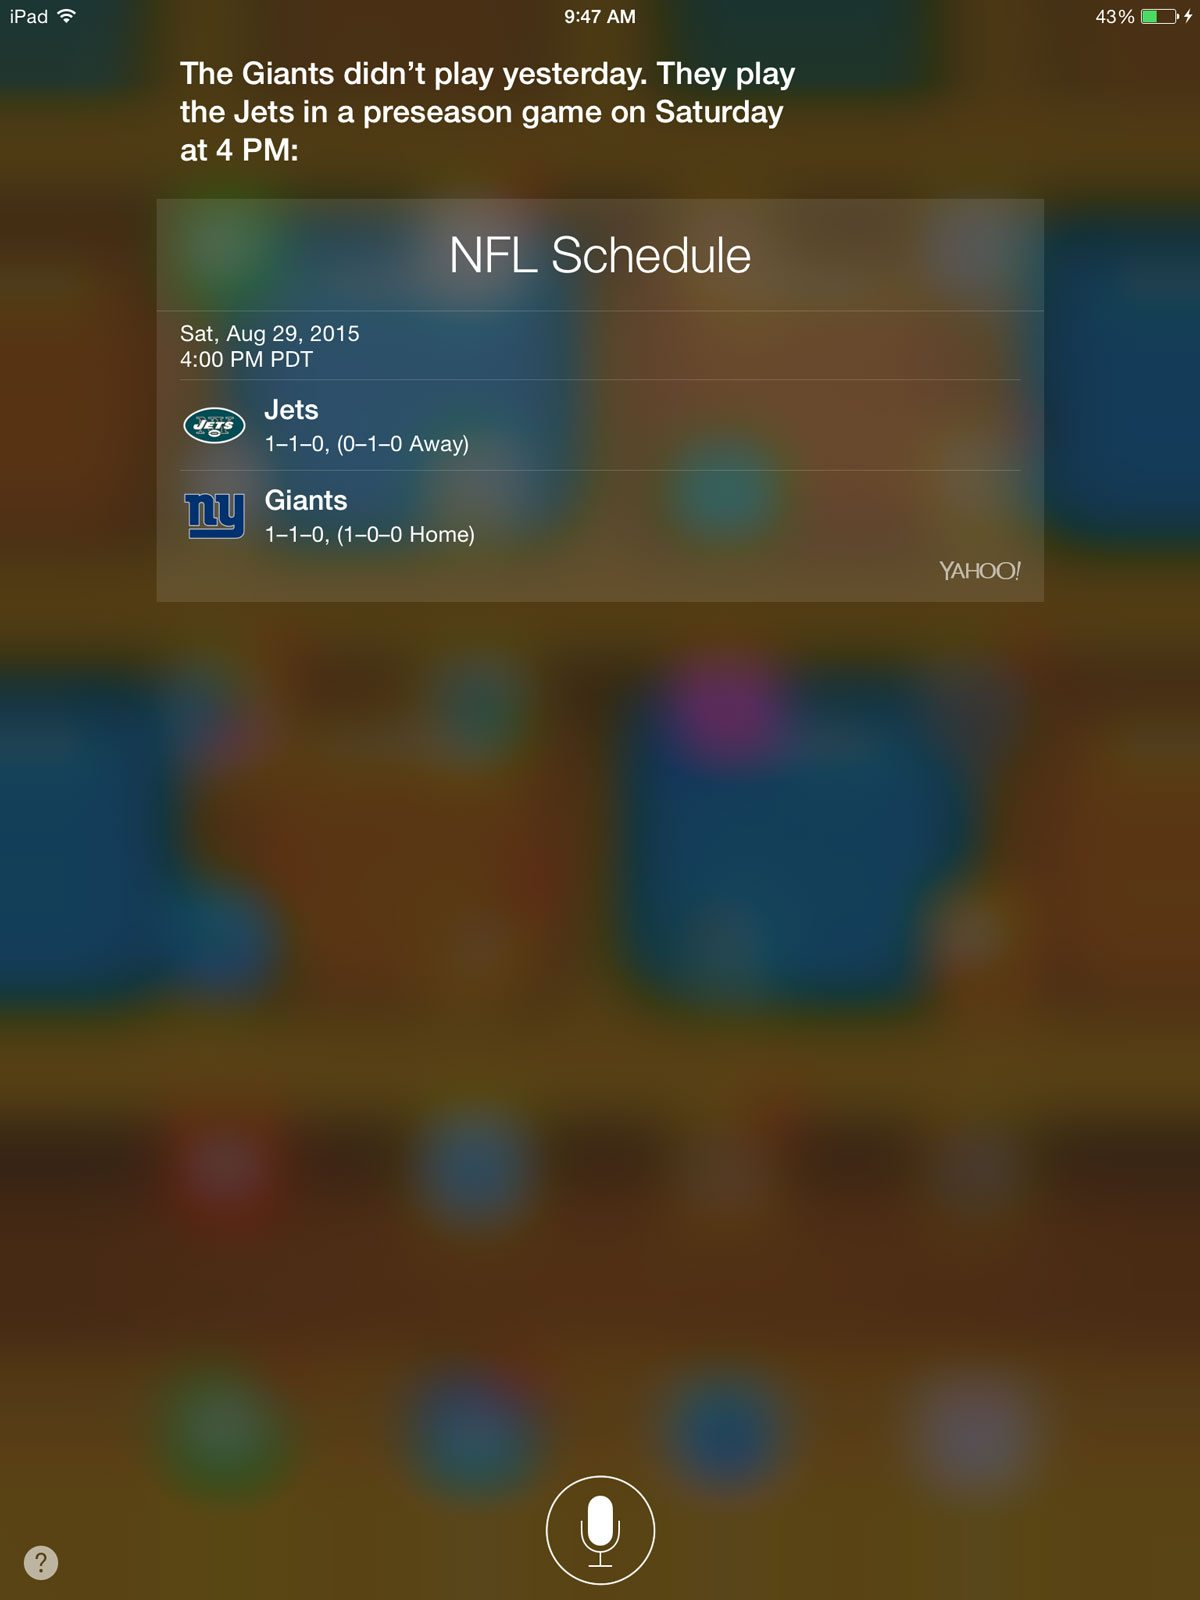 Siri's response to the Giants question